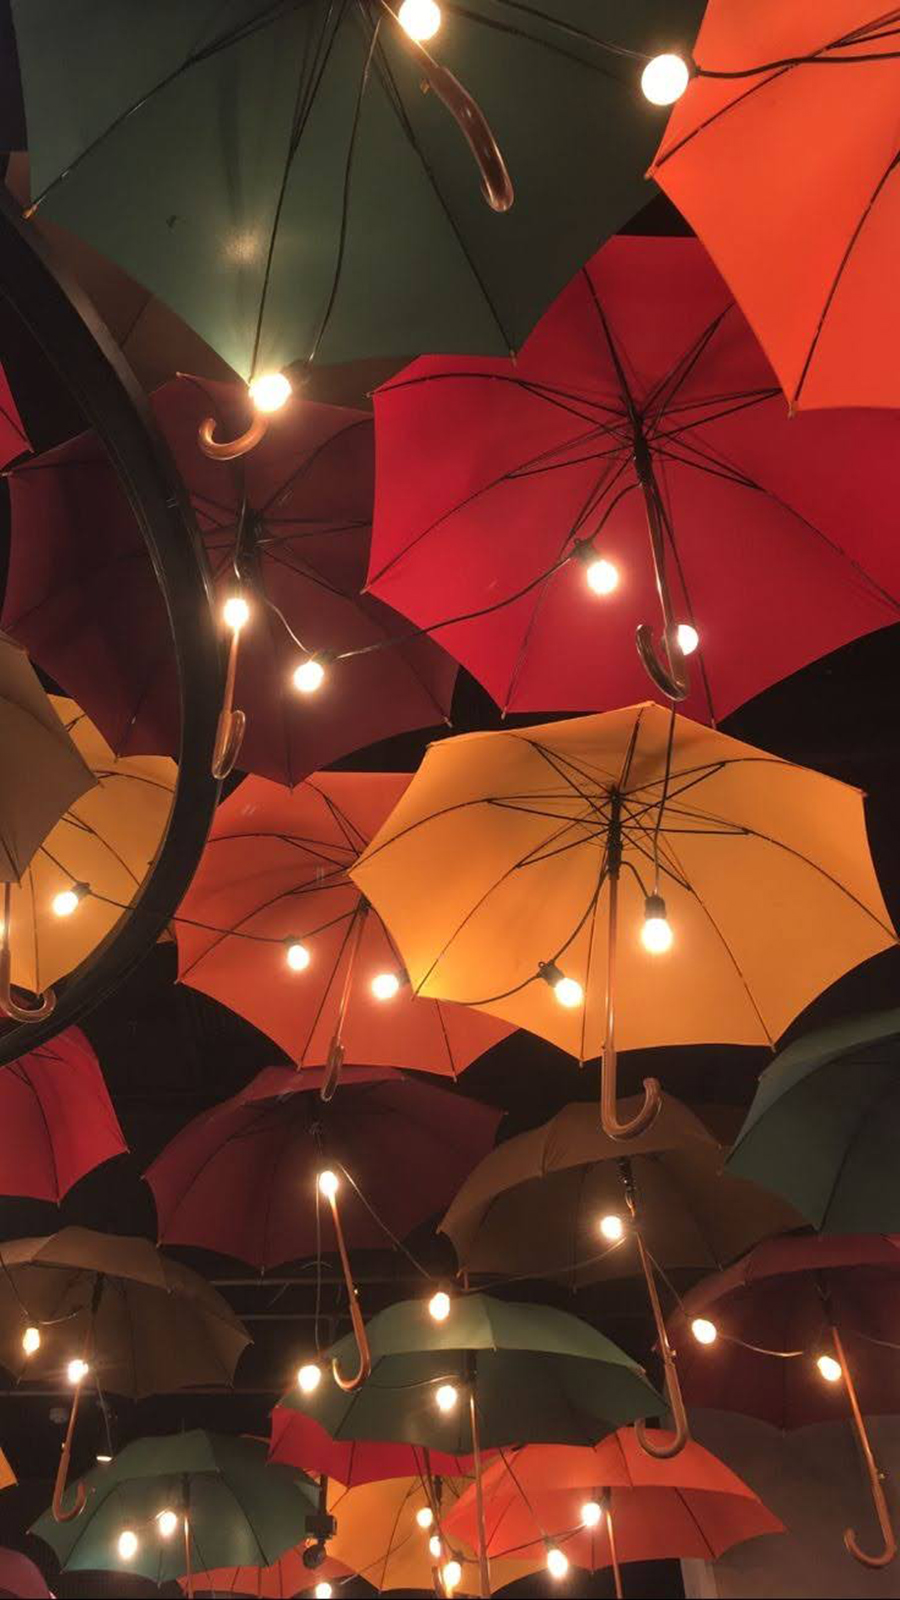 Umbrellas Wallpapers Free Download